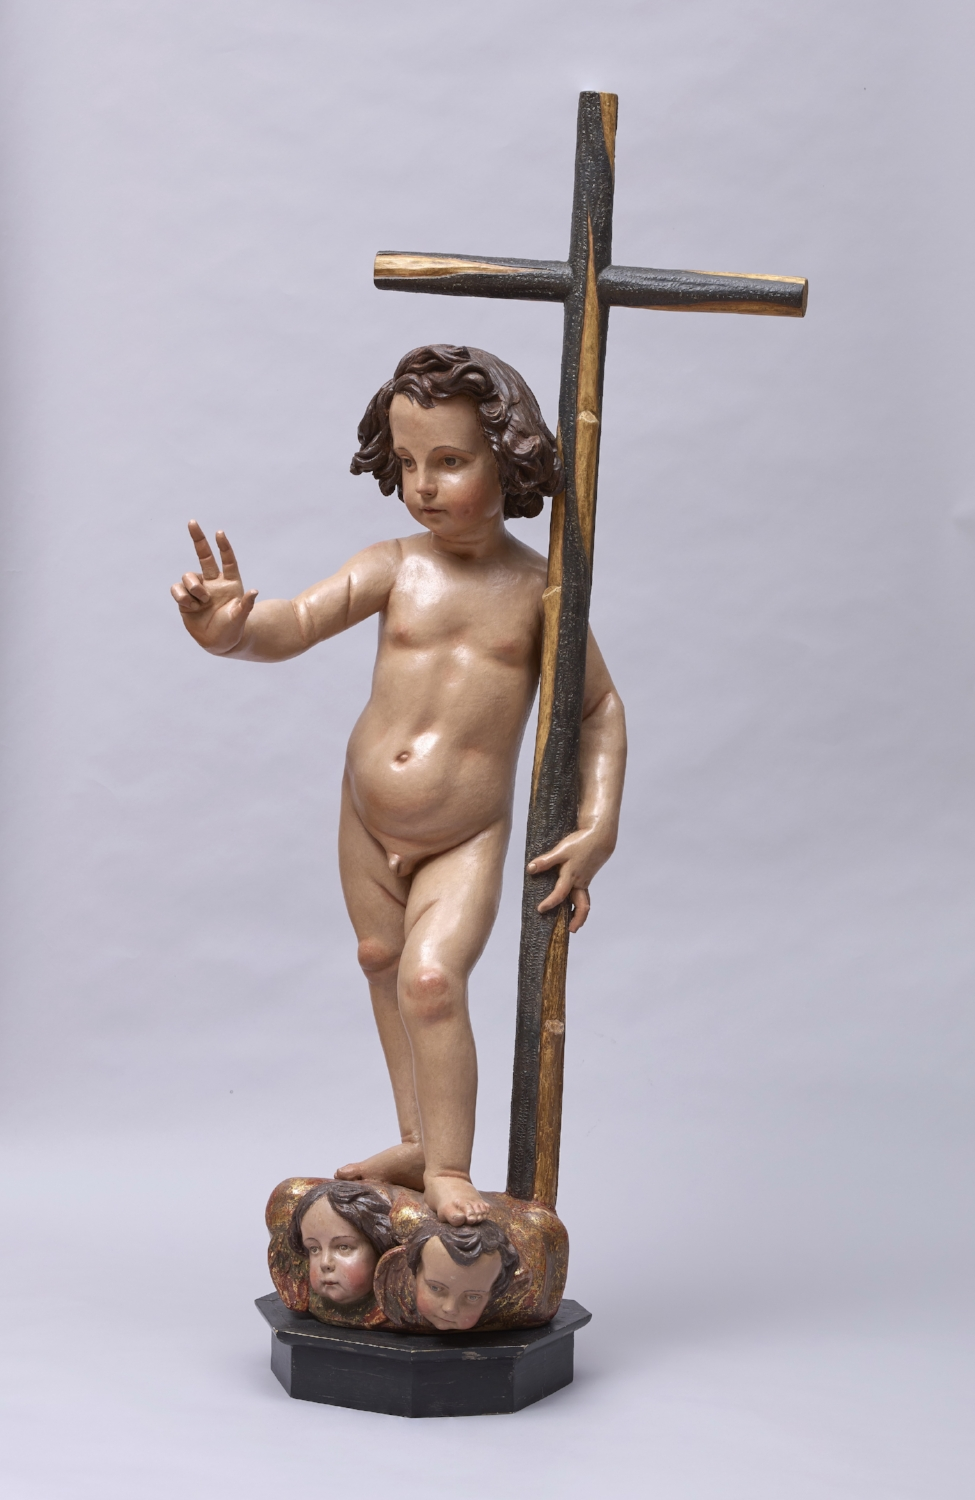 Francisco Dionisio de Ribas, Infant Jesus in triumph - View from the Right 2